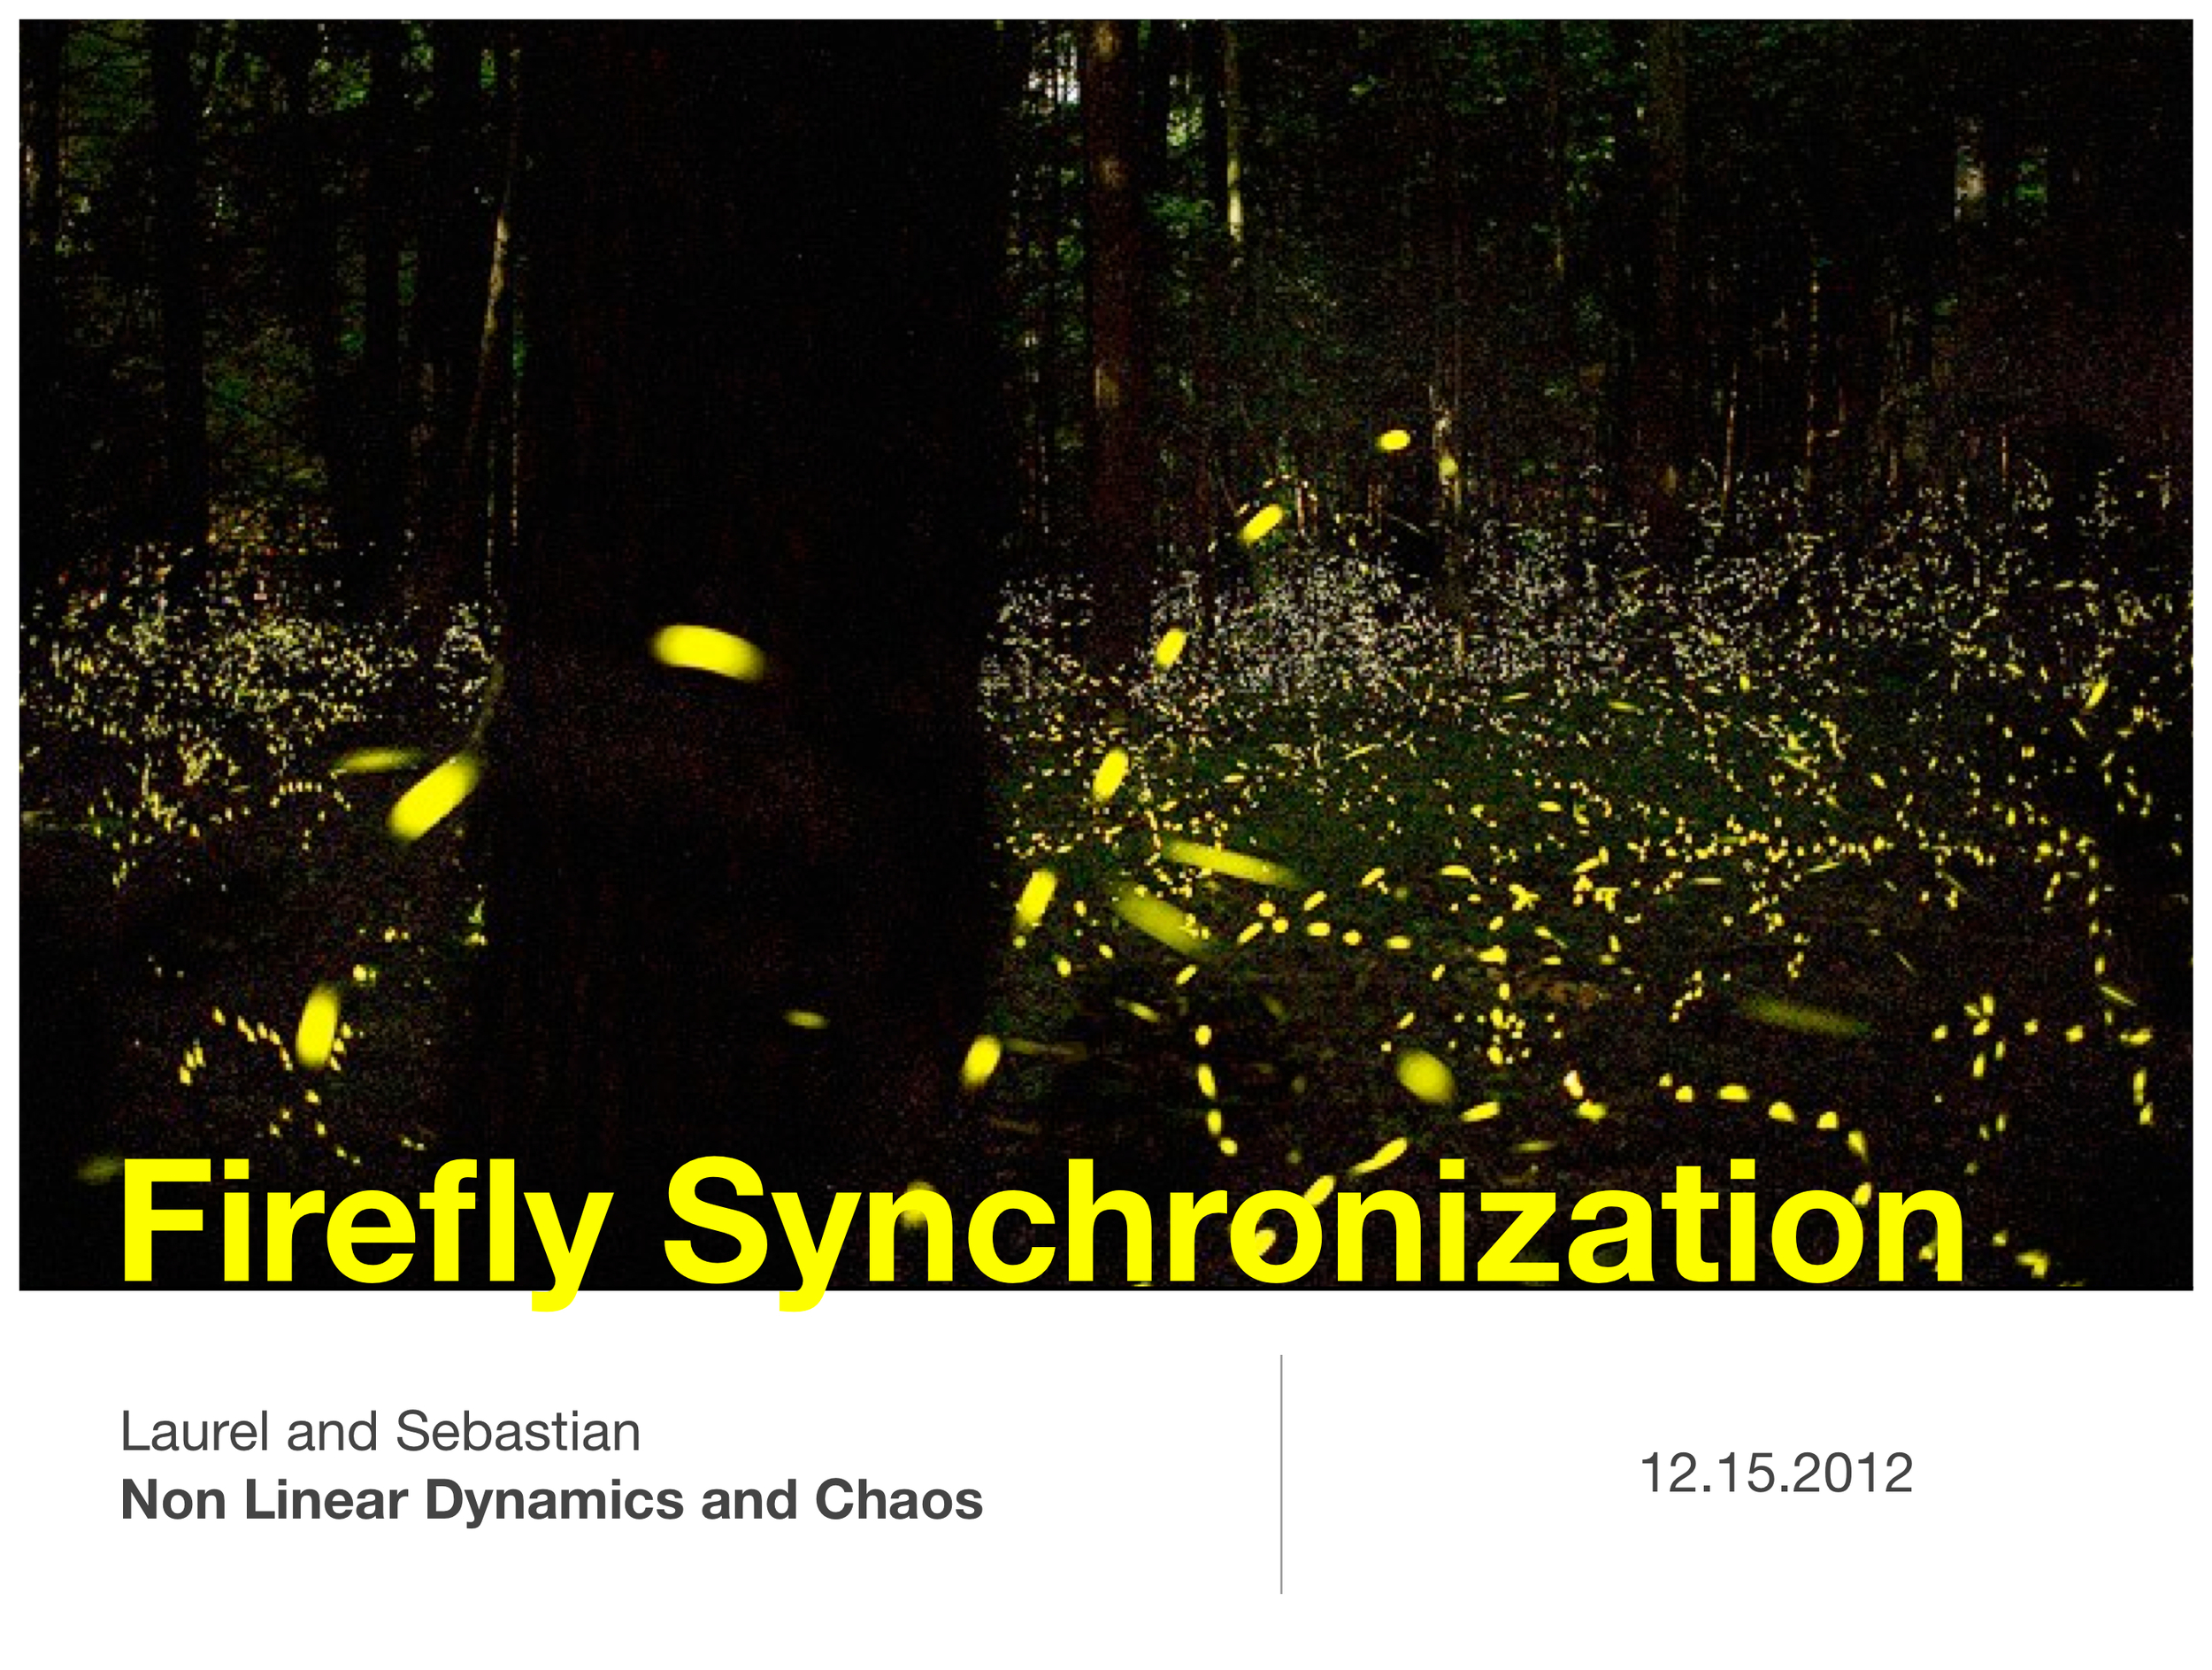 "Firefly Synchrony Research: Non-Linear Dynamics and Chaos Final Project  Olin College  Fall 2012 in Needham, MA   Implemented a commonly used model known as a ""biological clock"" to simulate firefly synchronization dynamics. System was an n-dimensional ODE, based on the phase and distance of fireflies nearby an individual. Effects of group's spacial distribution (e.g. 2 distinct groups versus 1 group or arranged in a pattern) was examined, along with contributing parameters to sync success. Final presentation slides linked in above image; note that all videos in presentation are inactive (PDF file)."